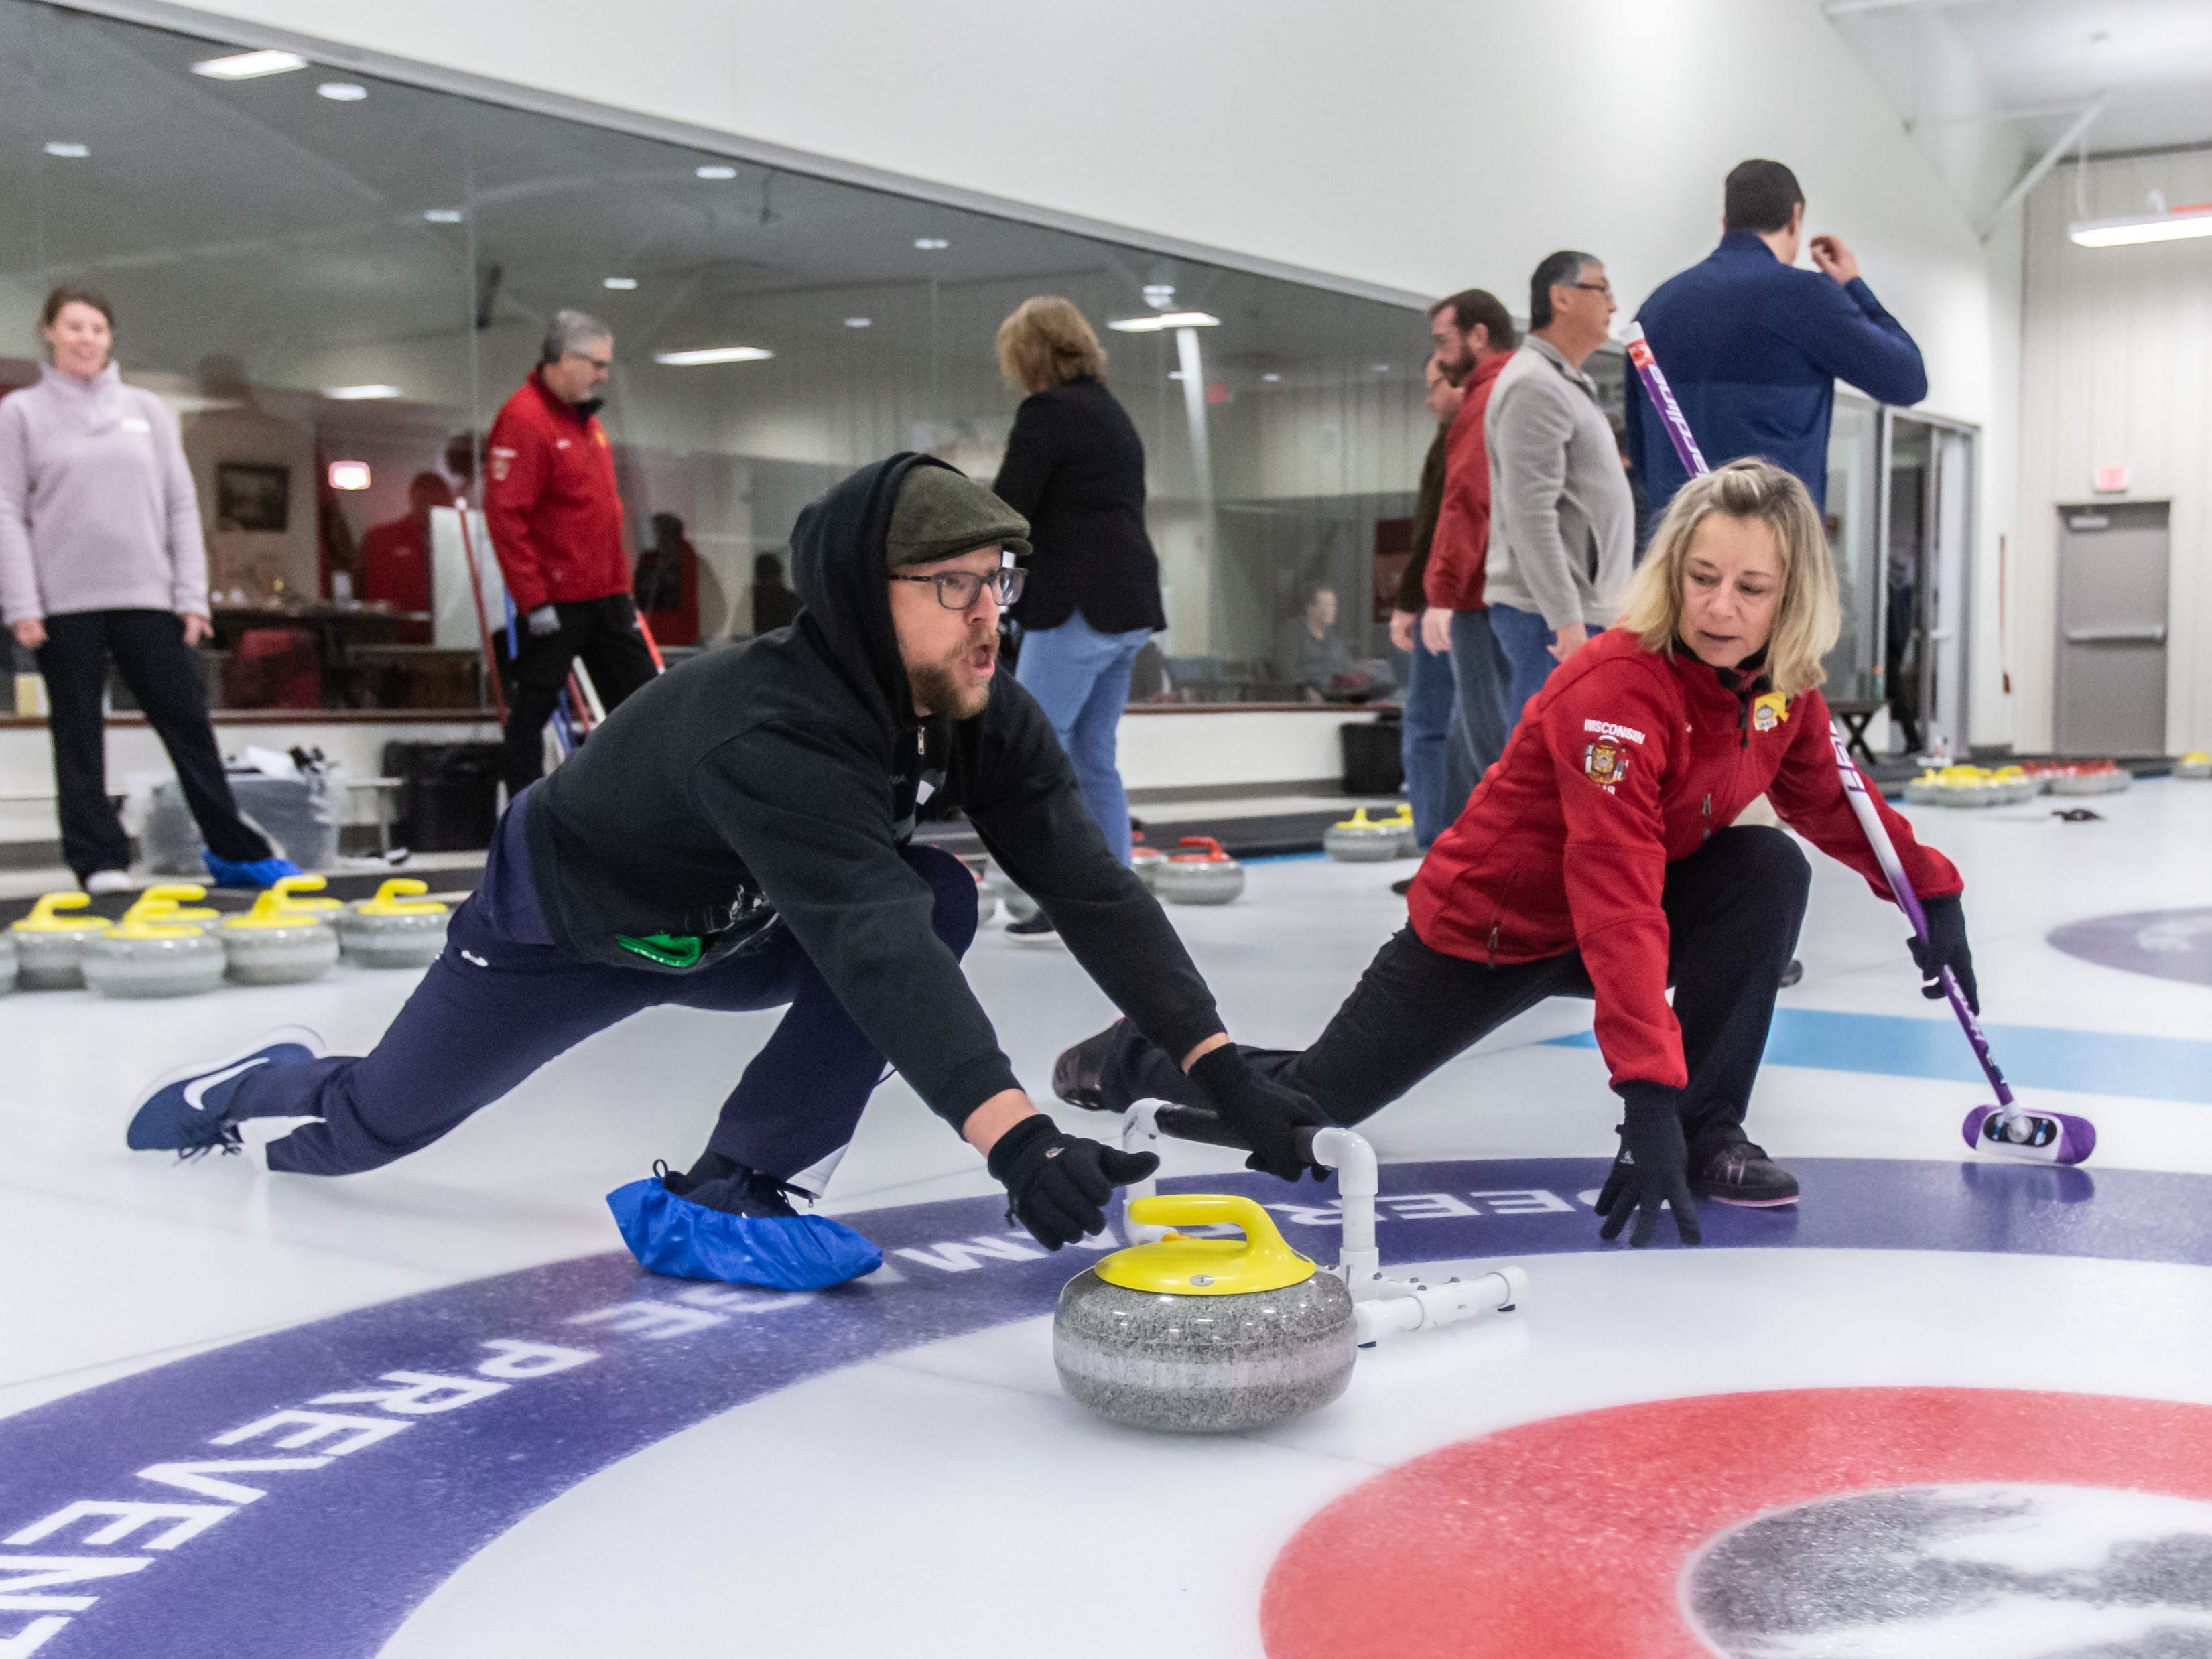 Matt Wills of Whitefish Bay releases a stone as instructor Chris Korjenek offers advice during the Learn to Curl program at the Milwaukee Curling Club in Cedarburg on Saturday, Dec. 29, 2018.